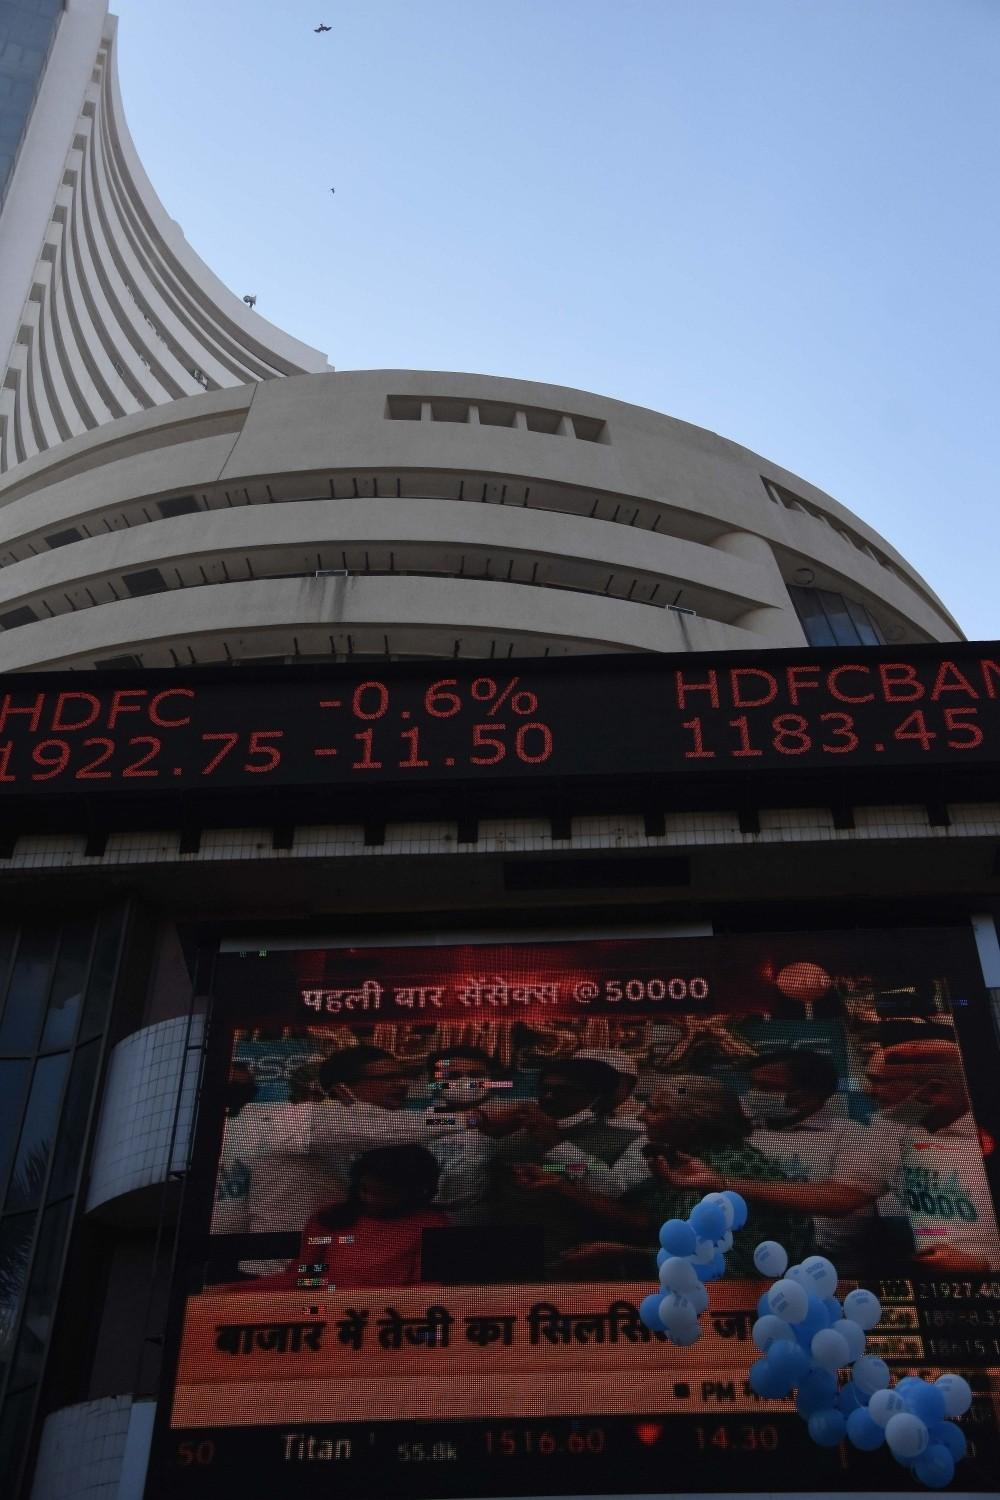 The Weekend Leader - Markets descend from record highs, profit bookings subdue sentiments